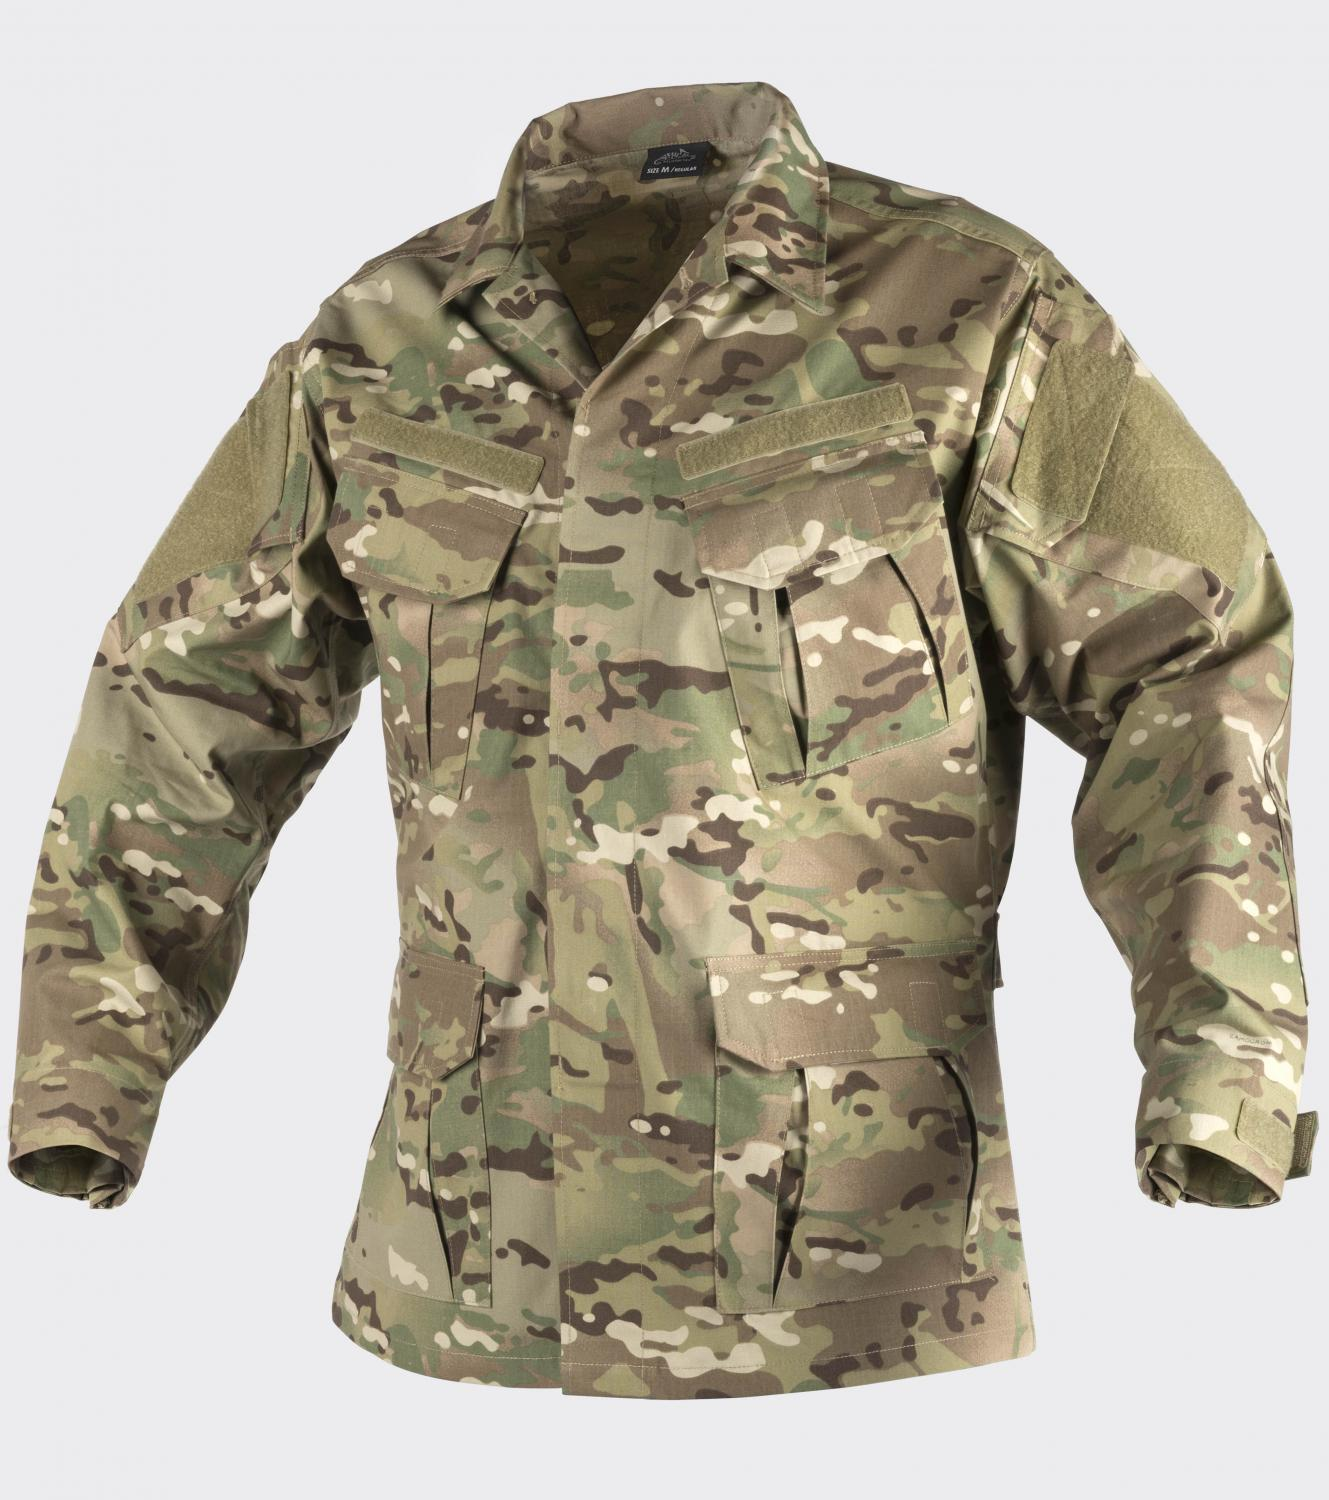 SFU (Special Forces Uniform) NEXT® - PolyCotton Ripstop Camogrom